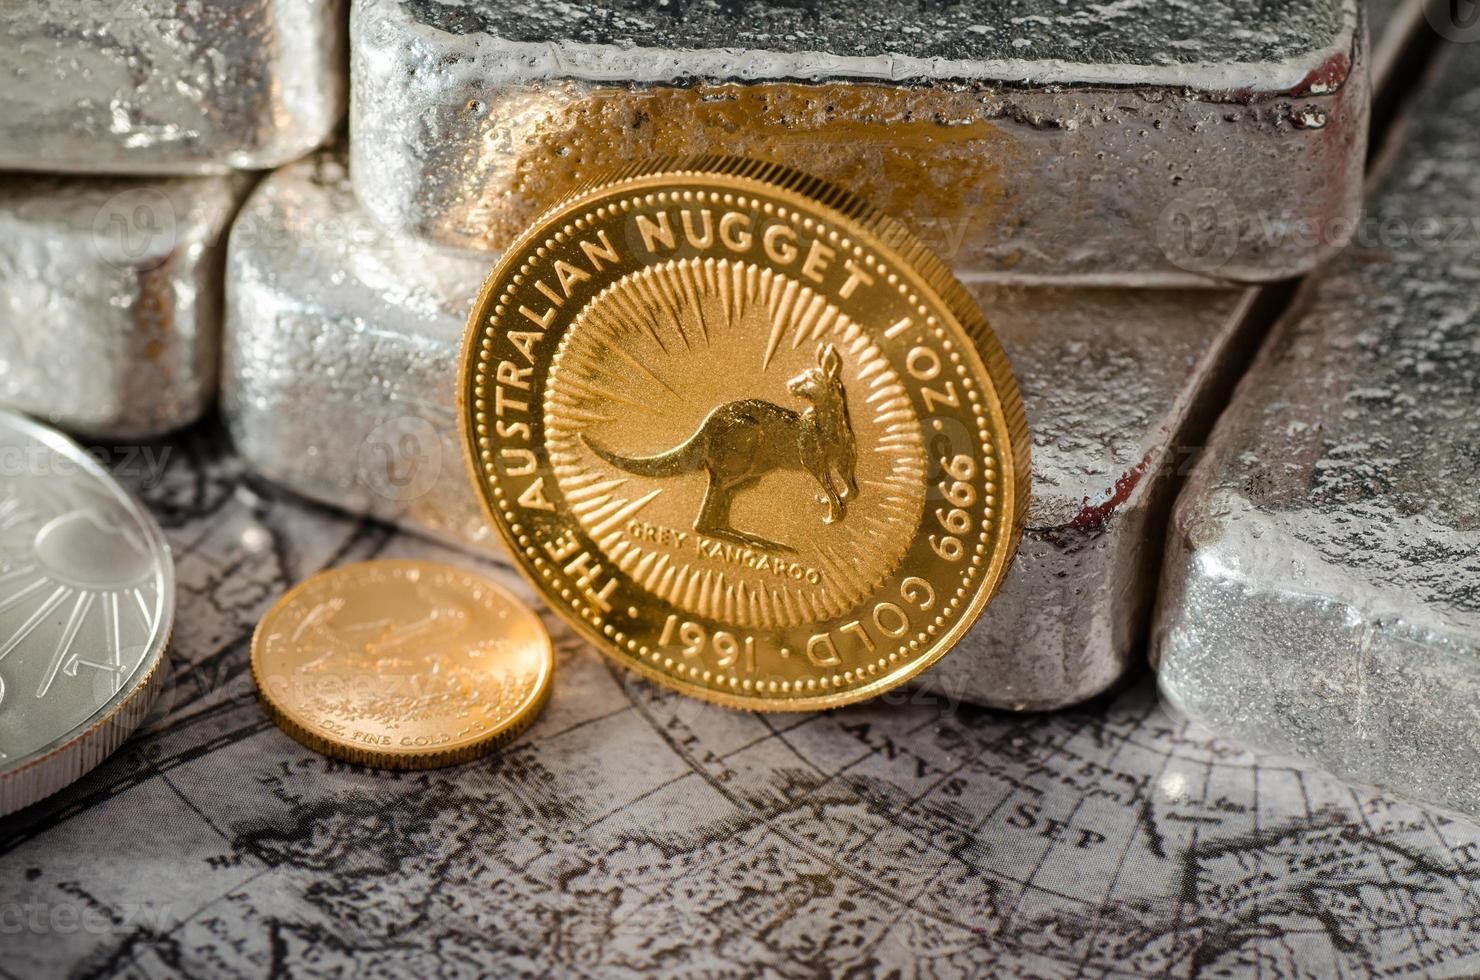 Australian Gold Coin Nugget infront of Silver Bars photo